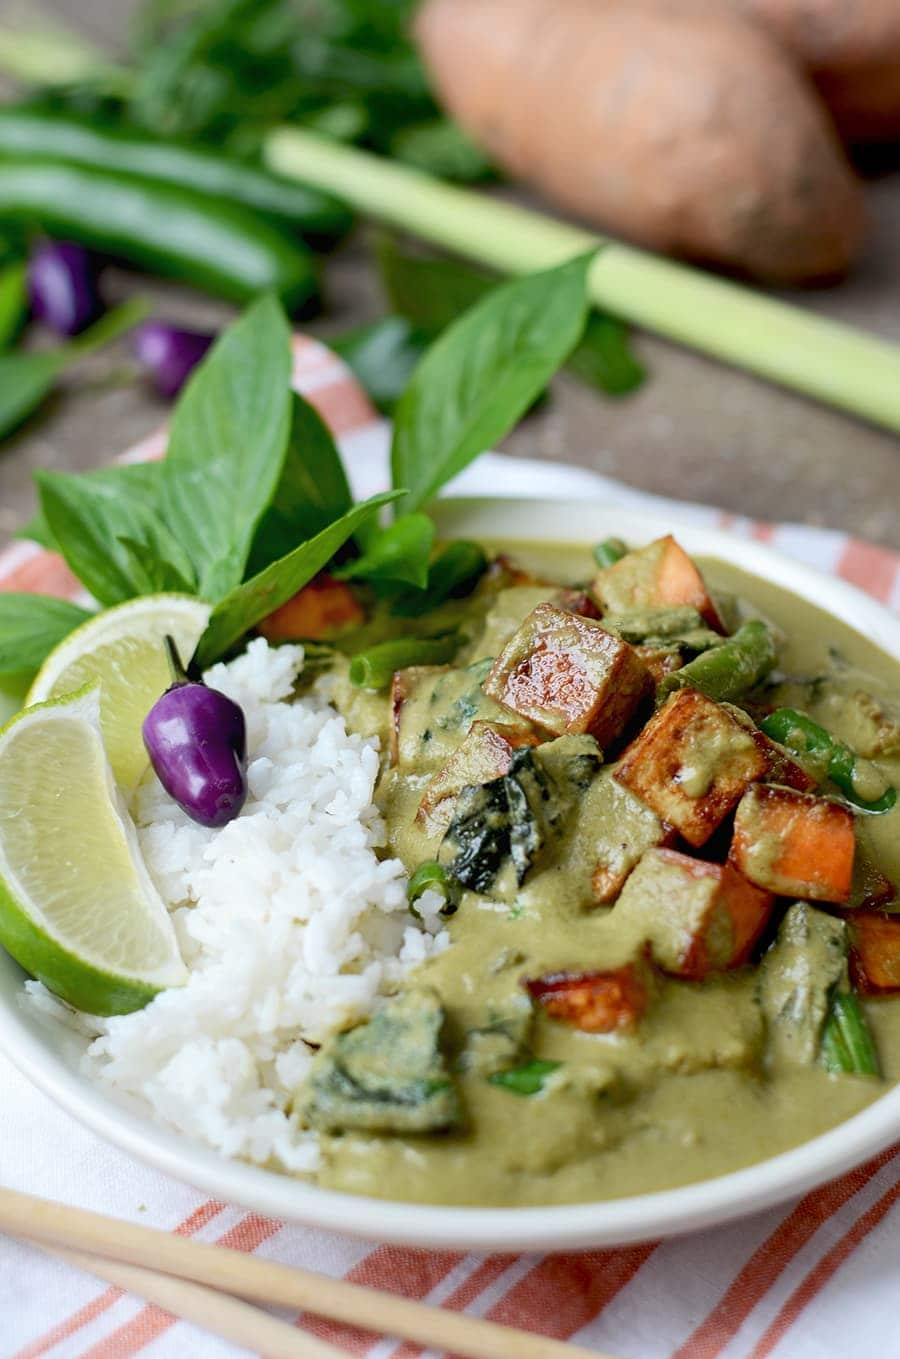 Green Thai Curry Web - Vegan Thai Green Curry from scratch </br> with Sweet Potatoes, Tofu, and Green Beans